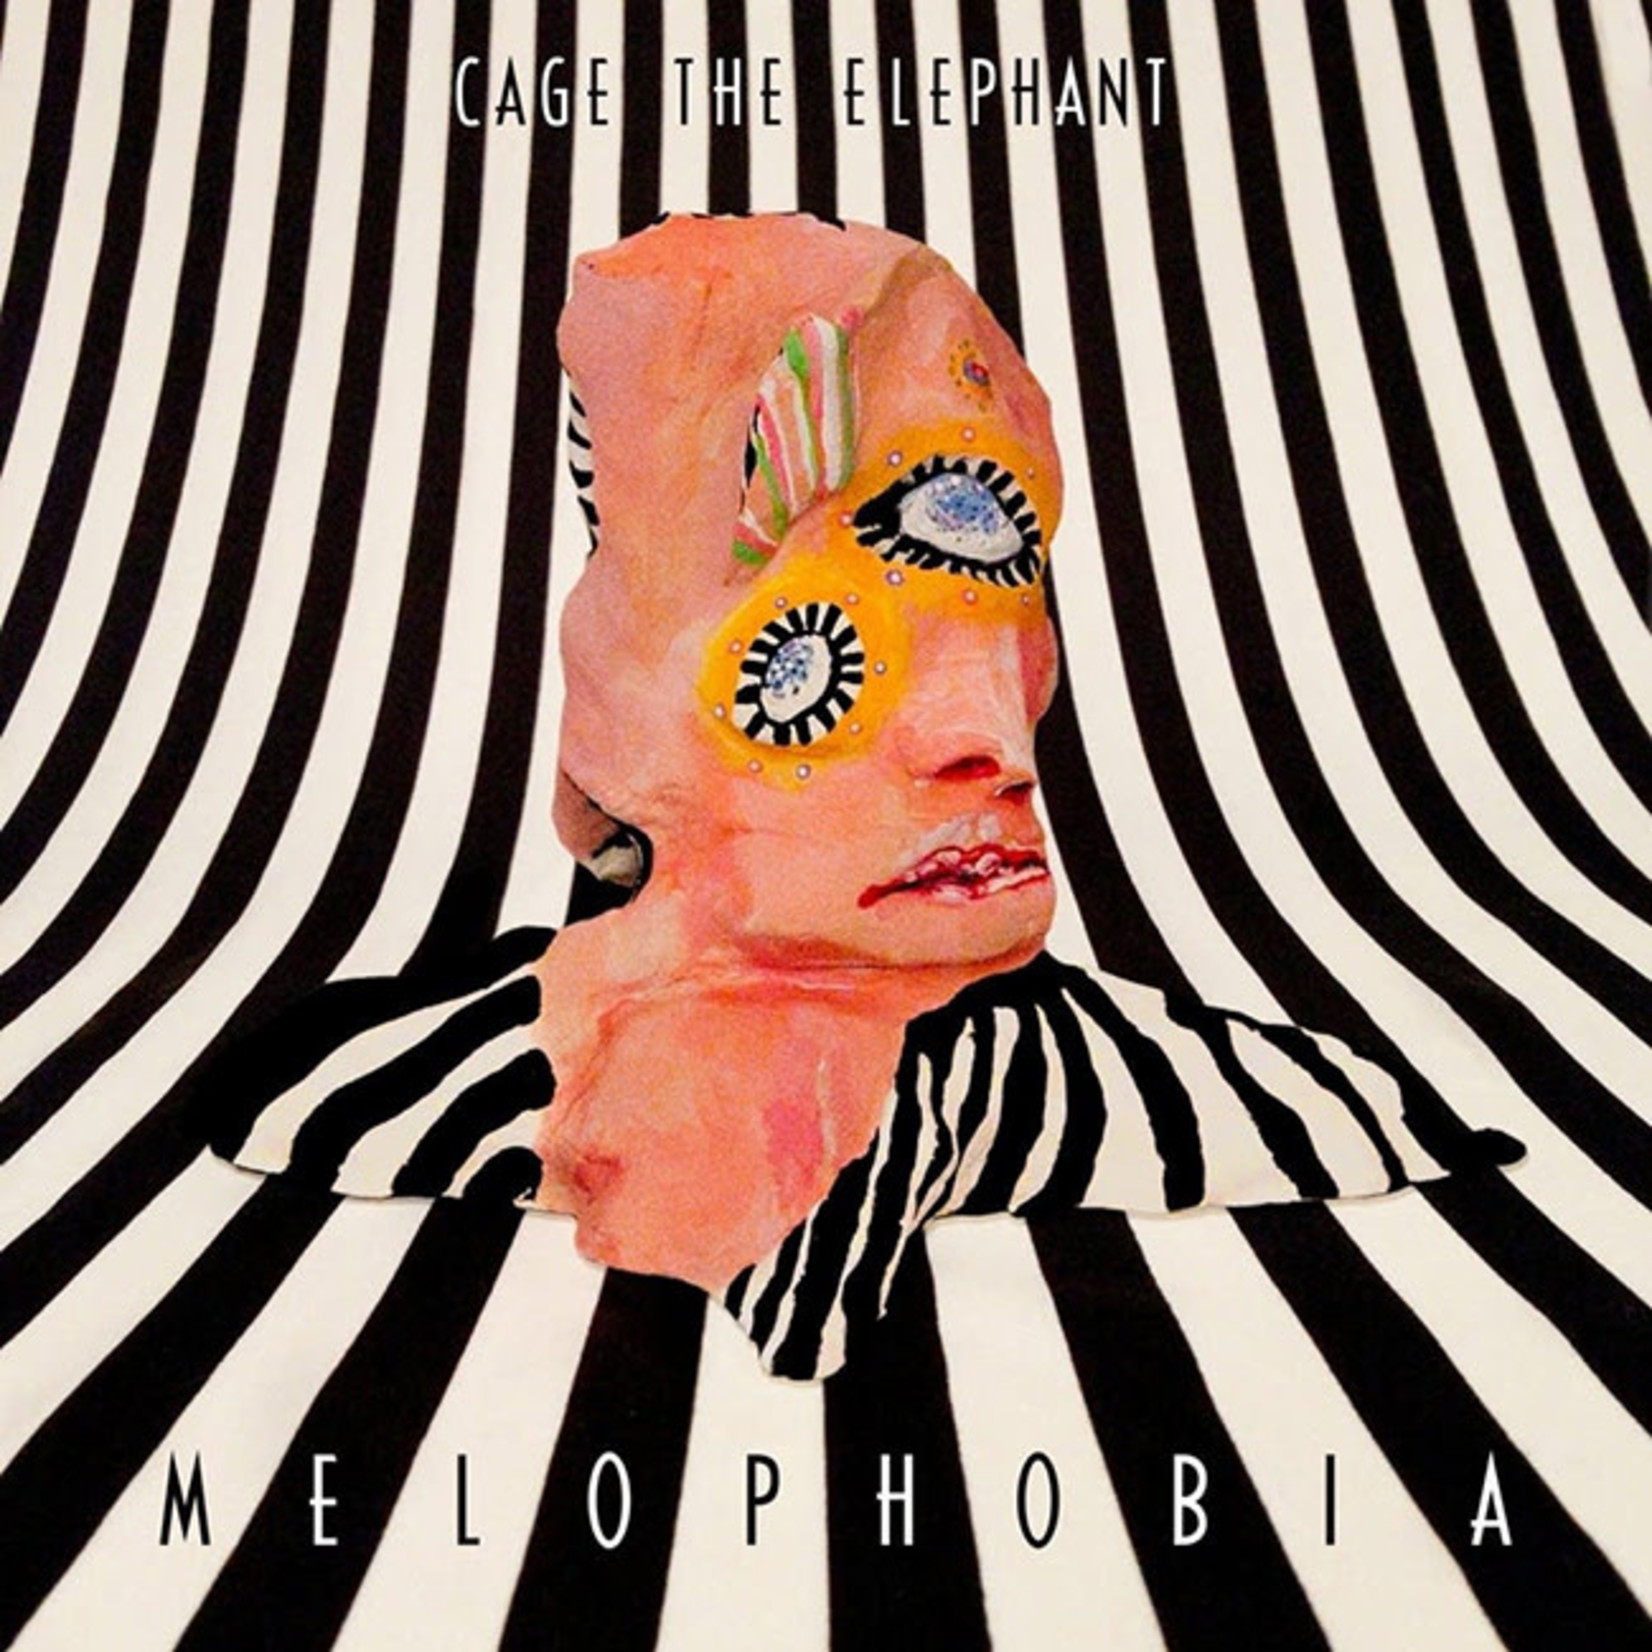 [New] Cage The Elephant: Melophobia